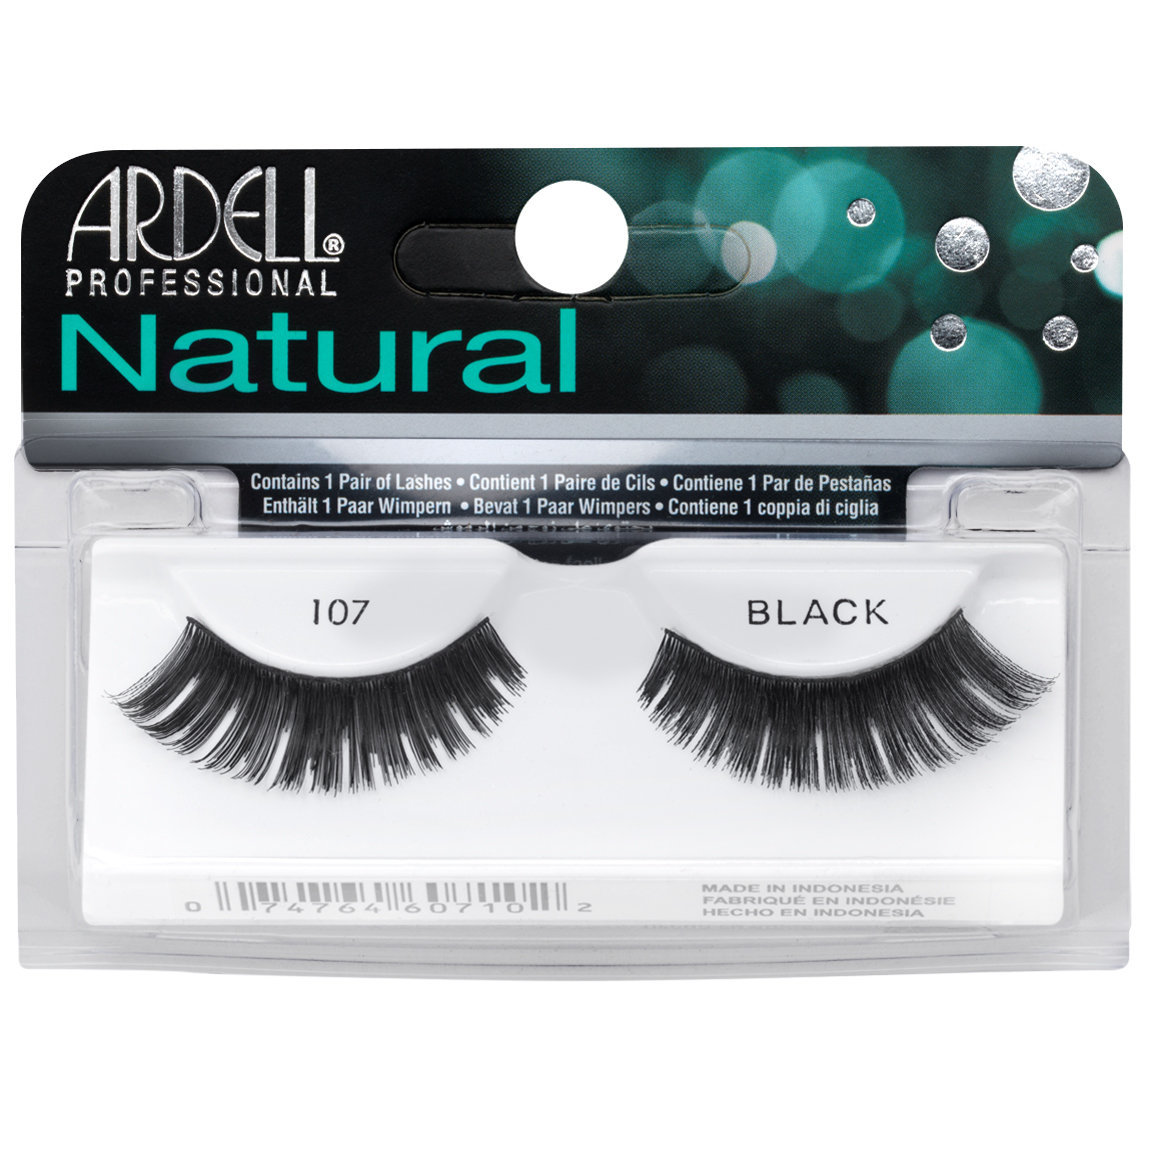 Ardell Natural Lashes 107 Black alternative view 1.